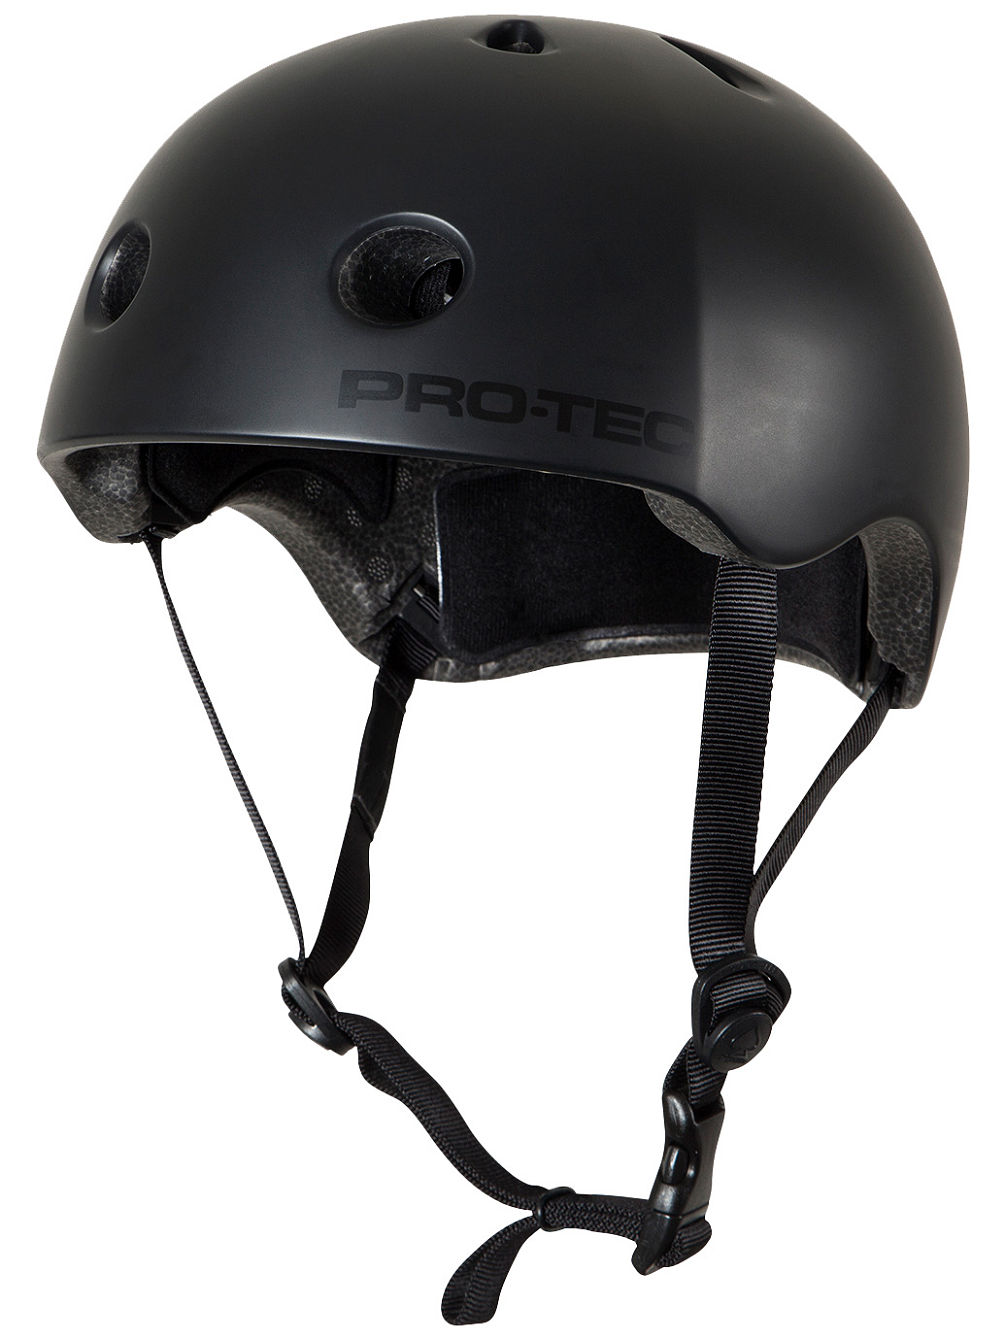 The Street Lite Helmet